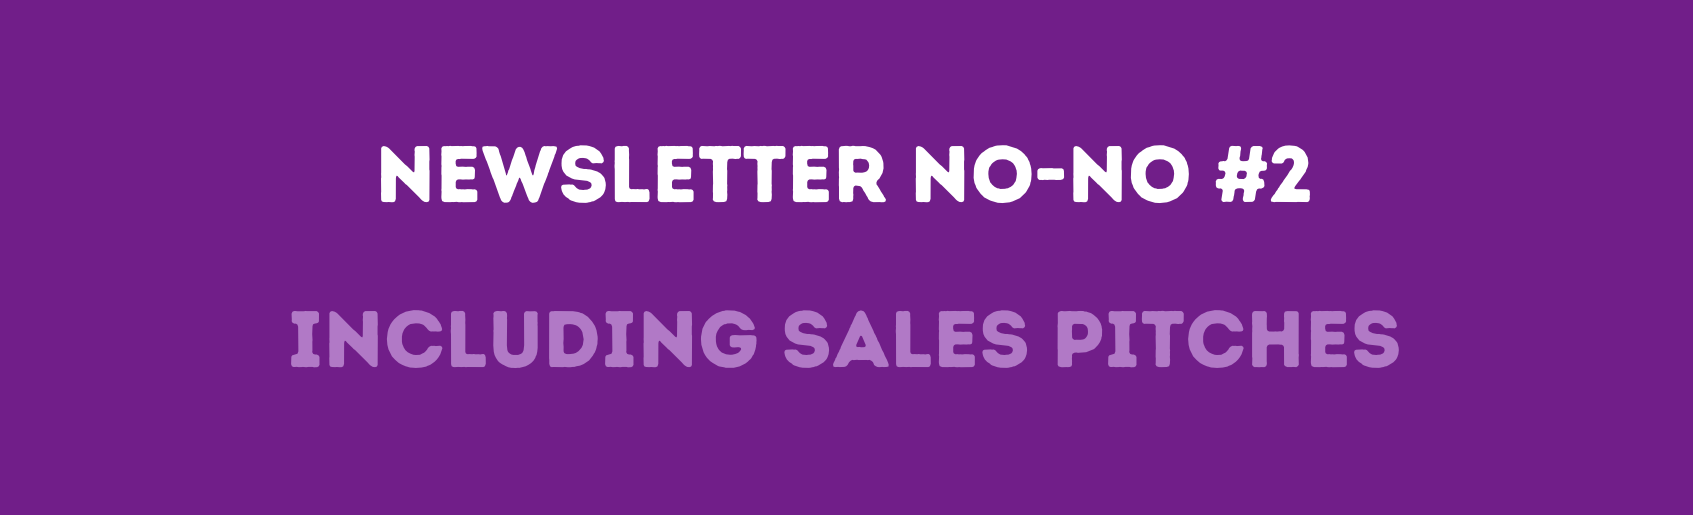 Newsletter No-no #2: Including sales pitches